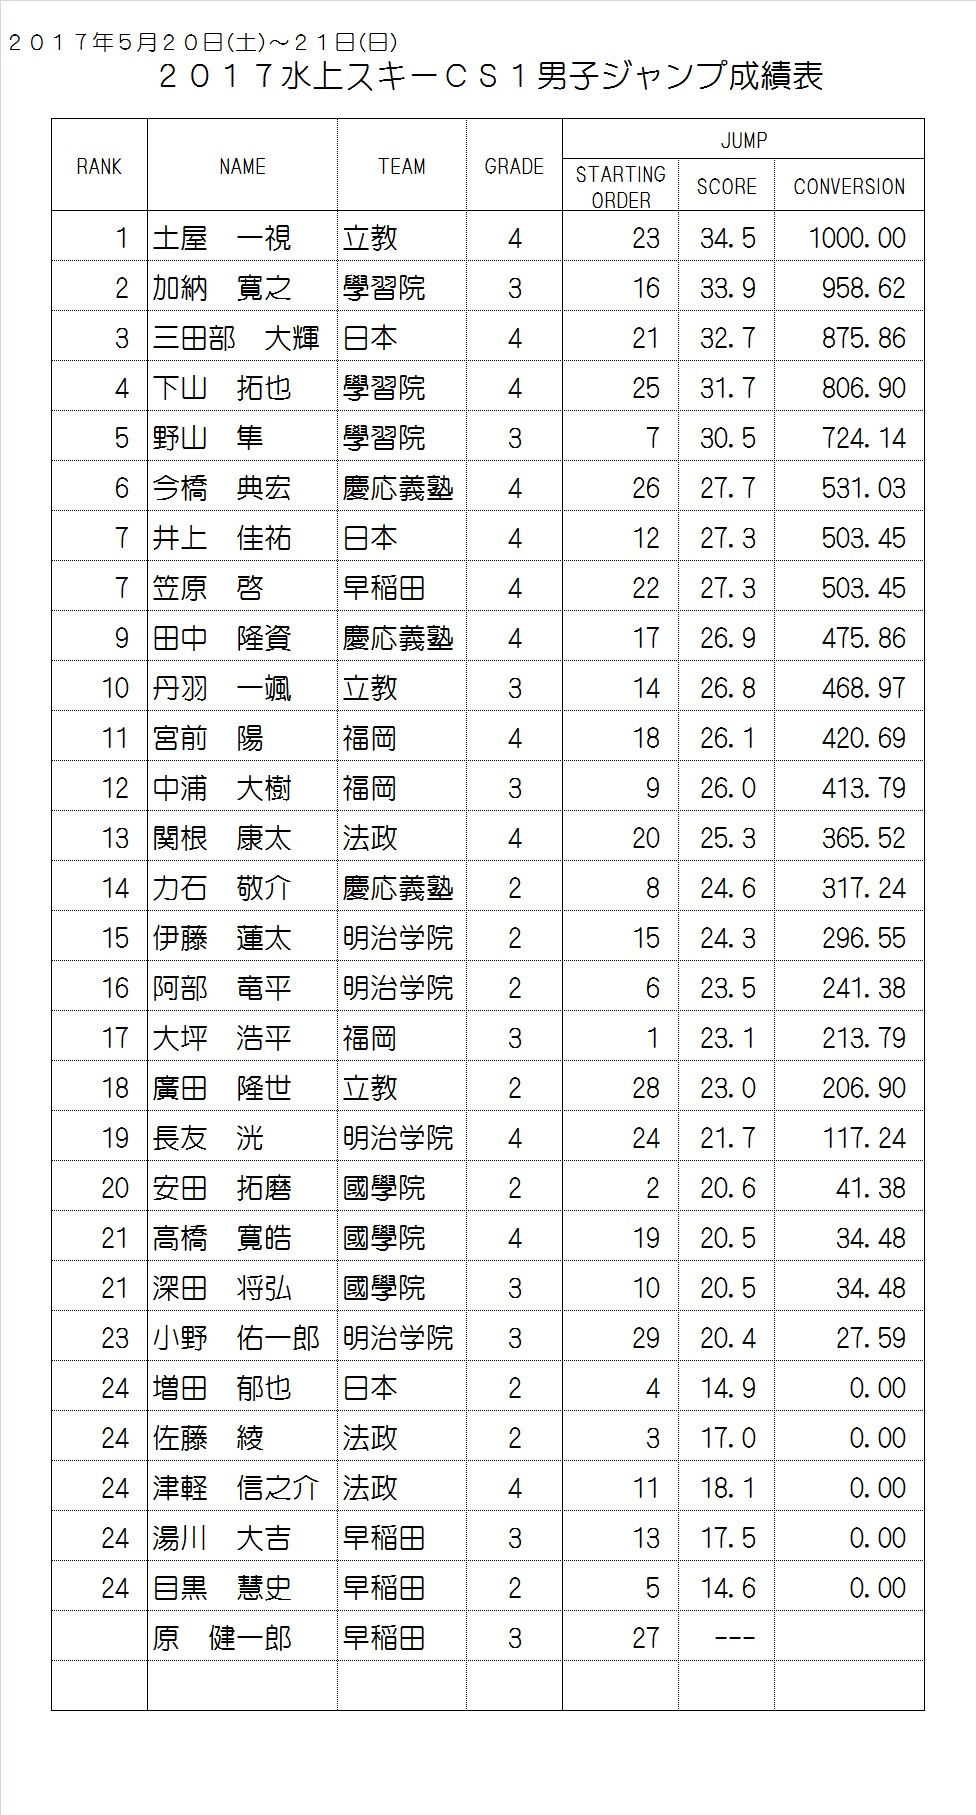 2017CS1 Men's Result Jump